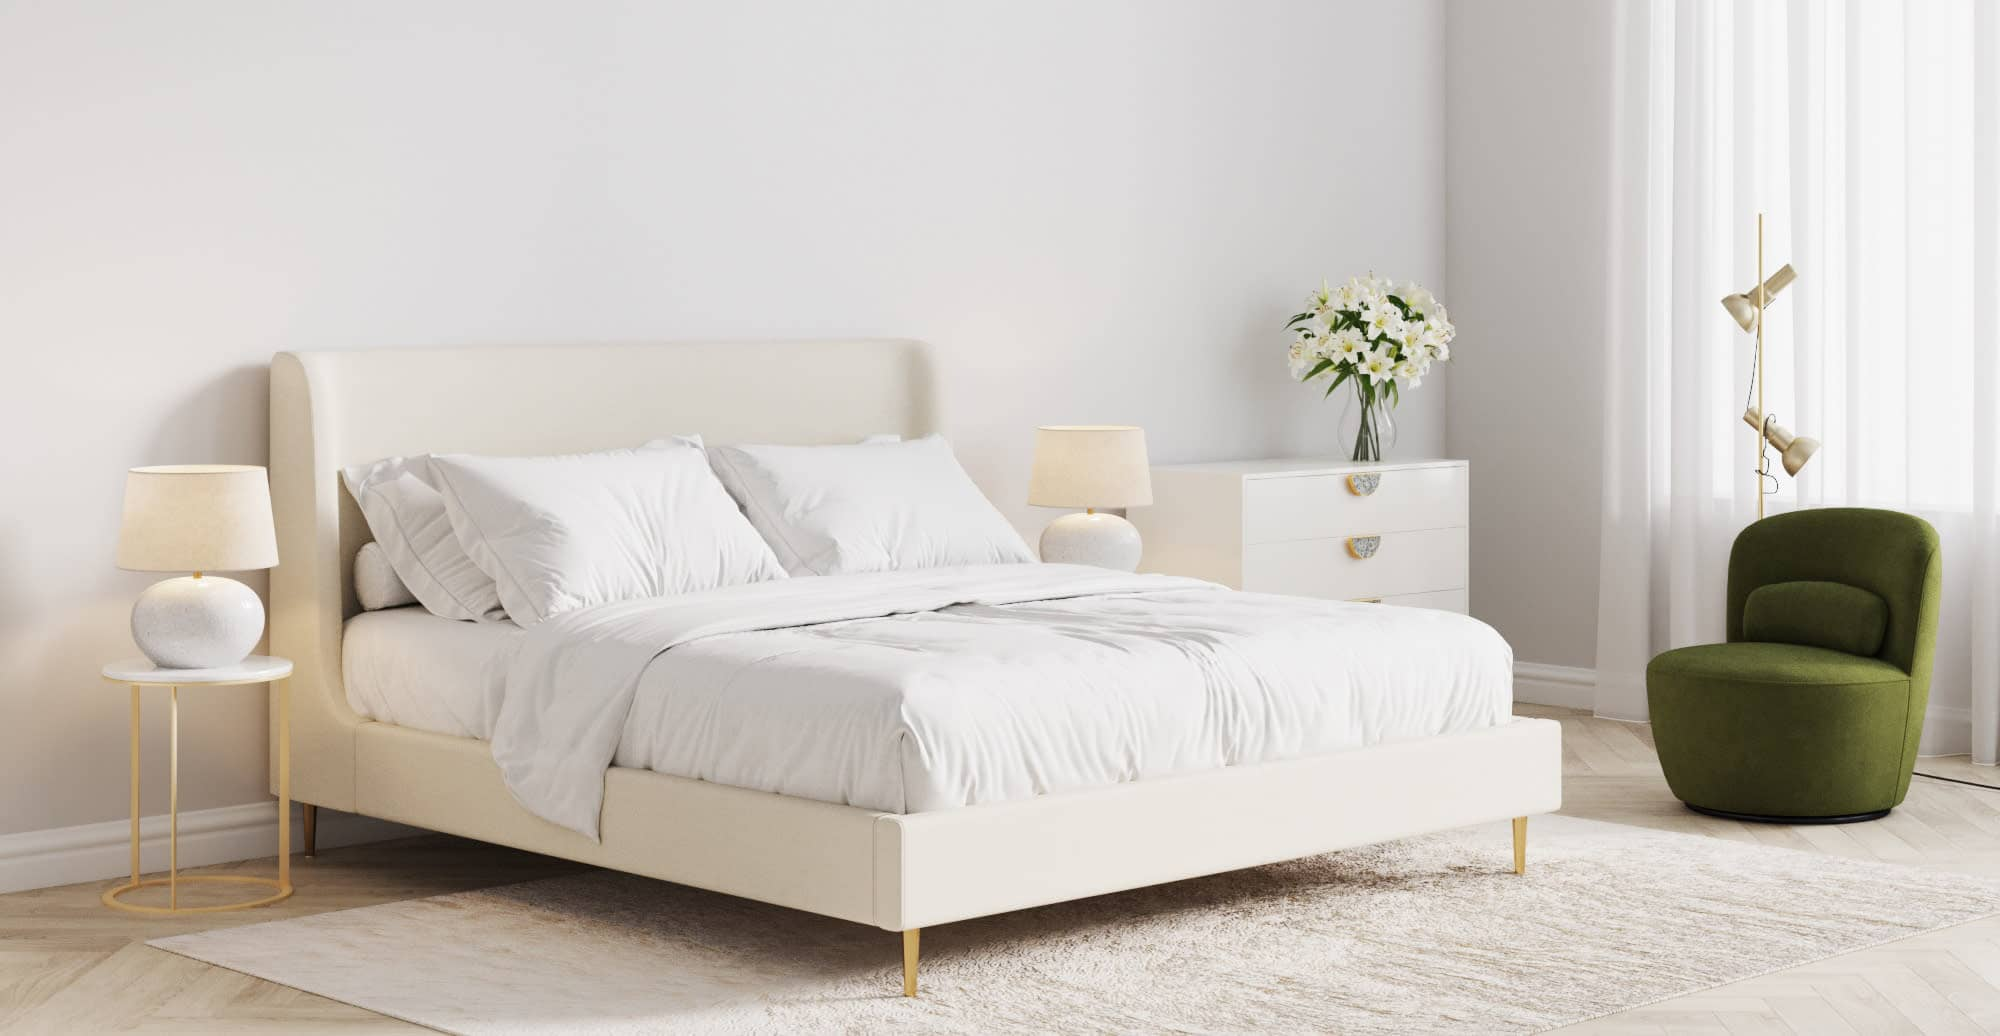 brosa gia bed in minimalist all white bedroom with round marble side tables